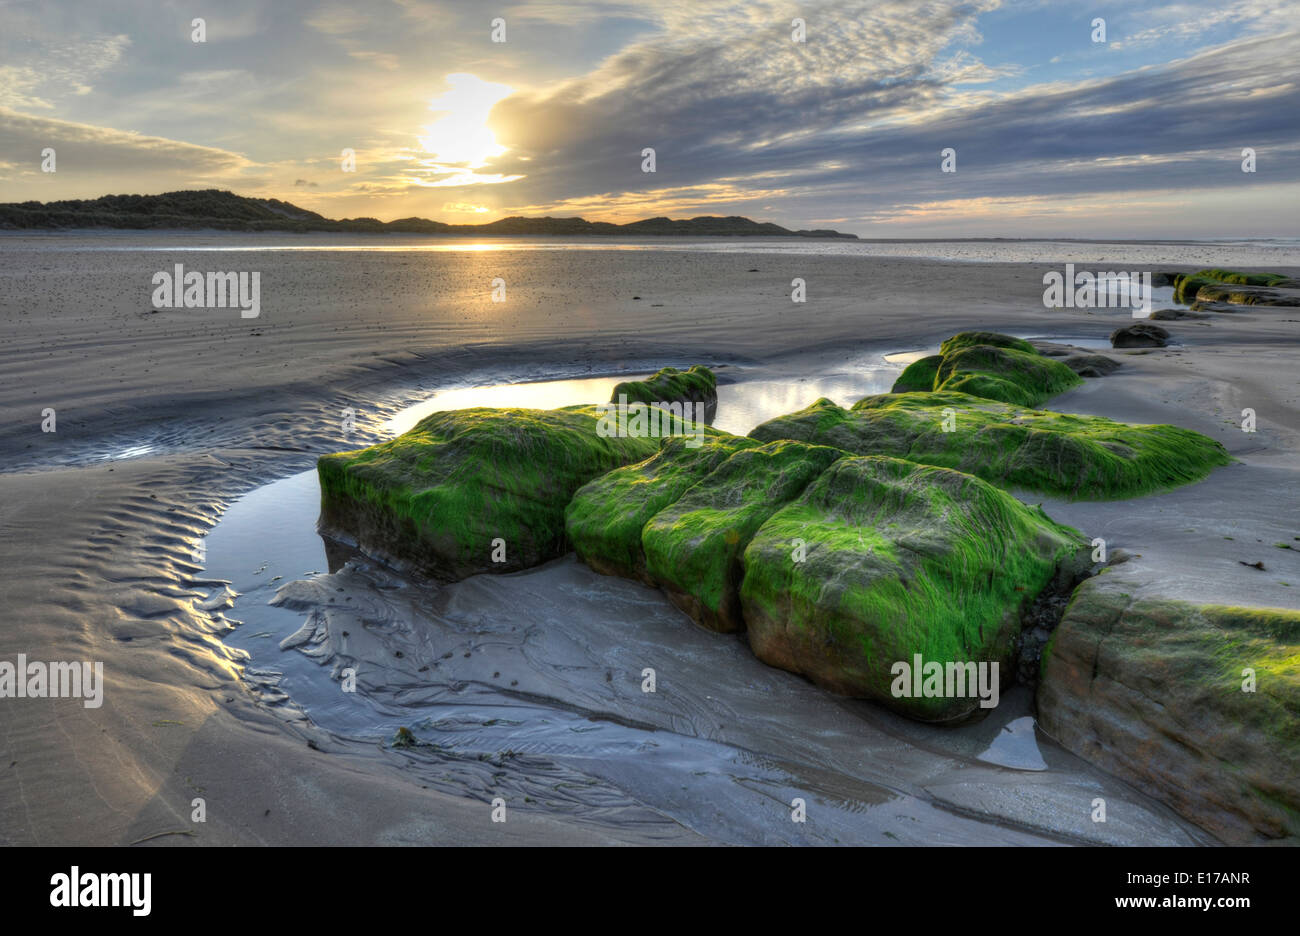 Seahouses beach at sunset - Stock Image